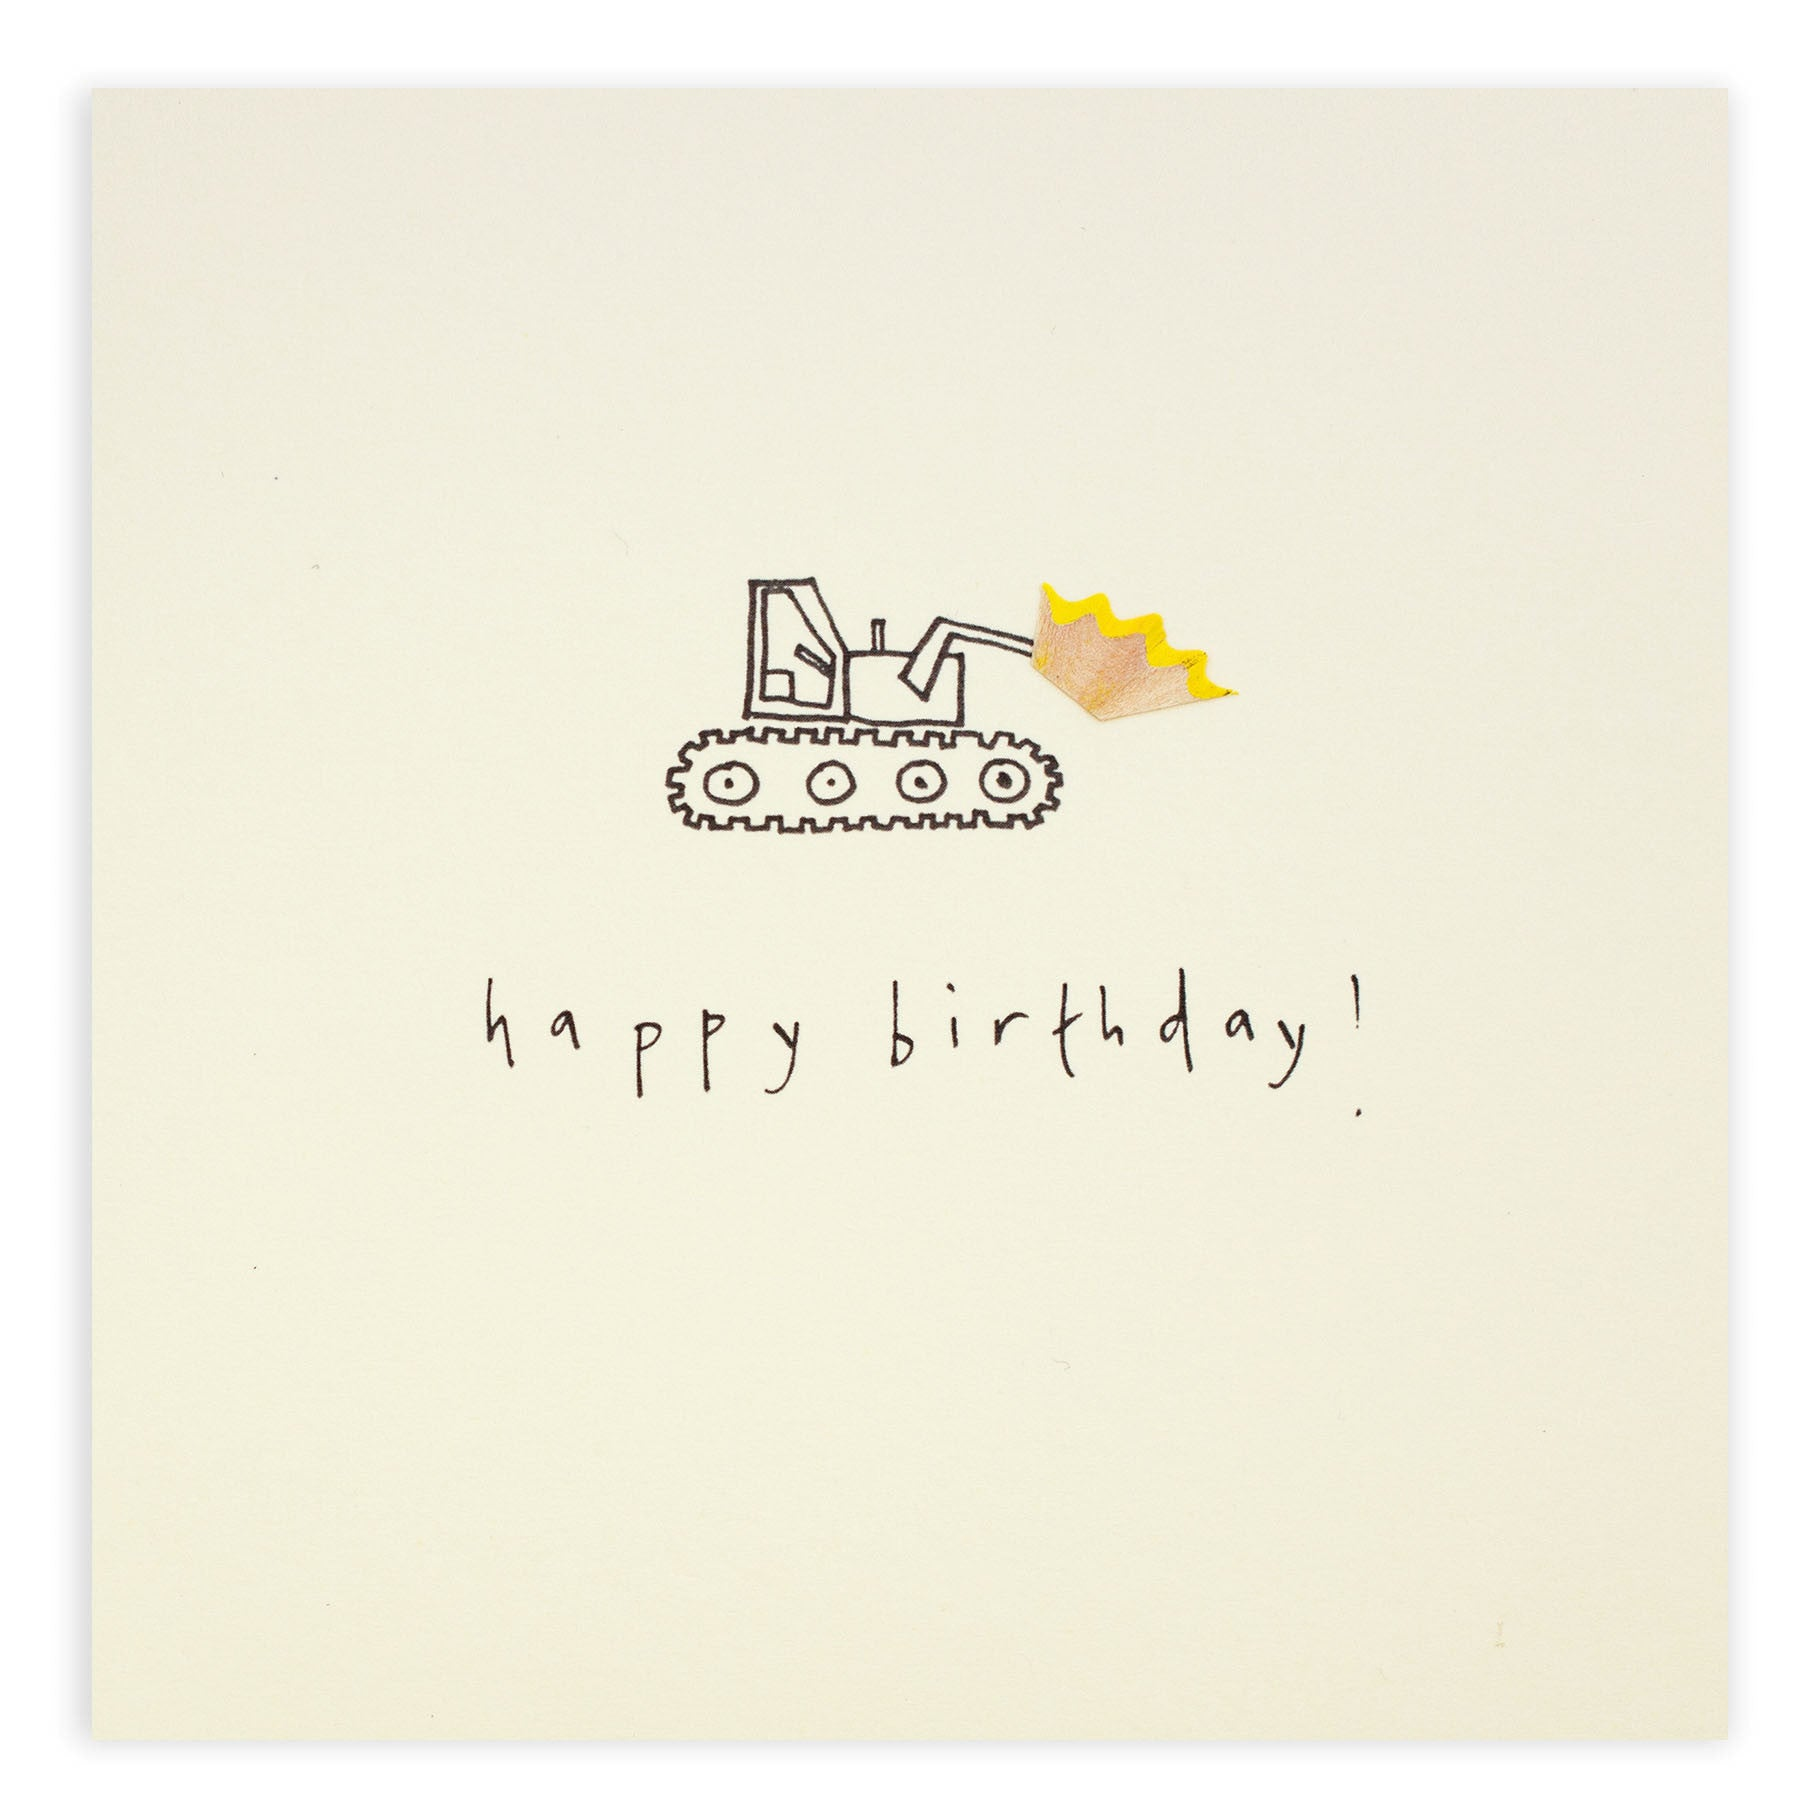 Greetings Cards - Ruth Jackson - Birthday Loader - How I Wonder.co.uk